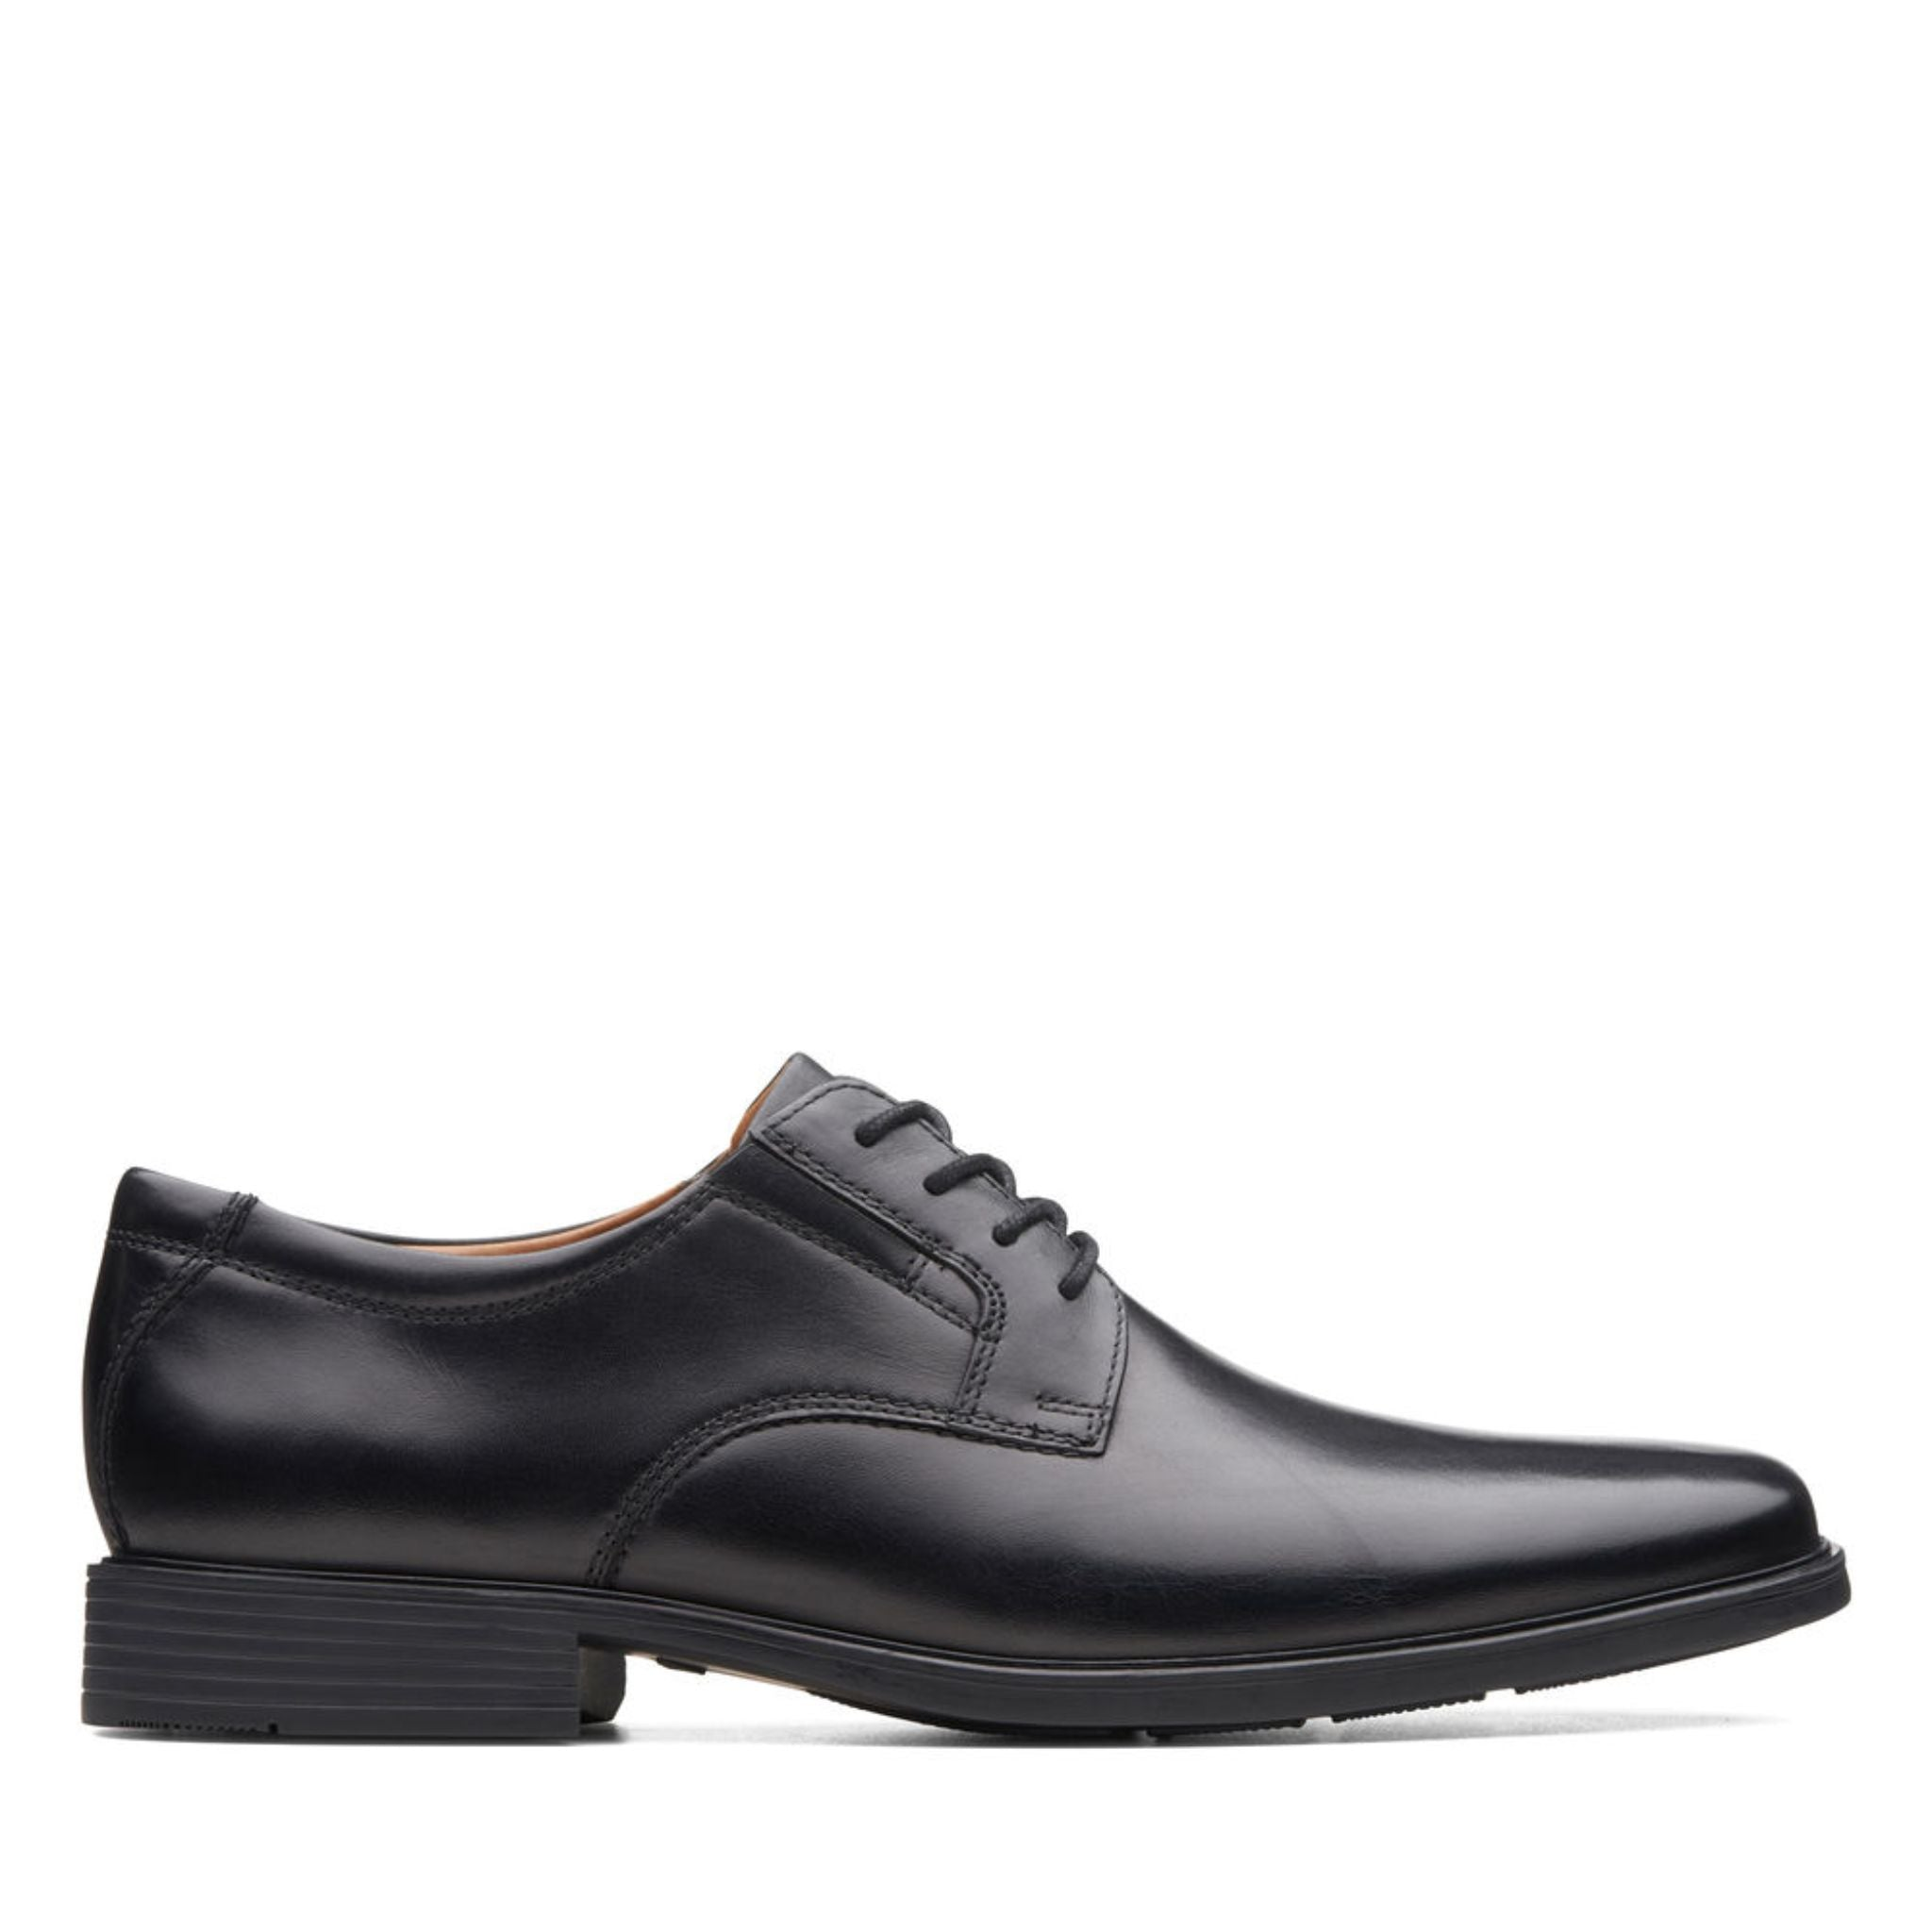 Clarks Tilden Plain - Black Leather